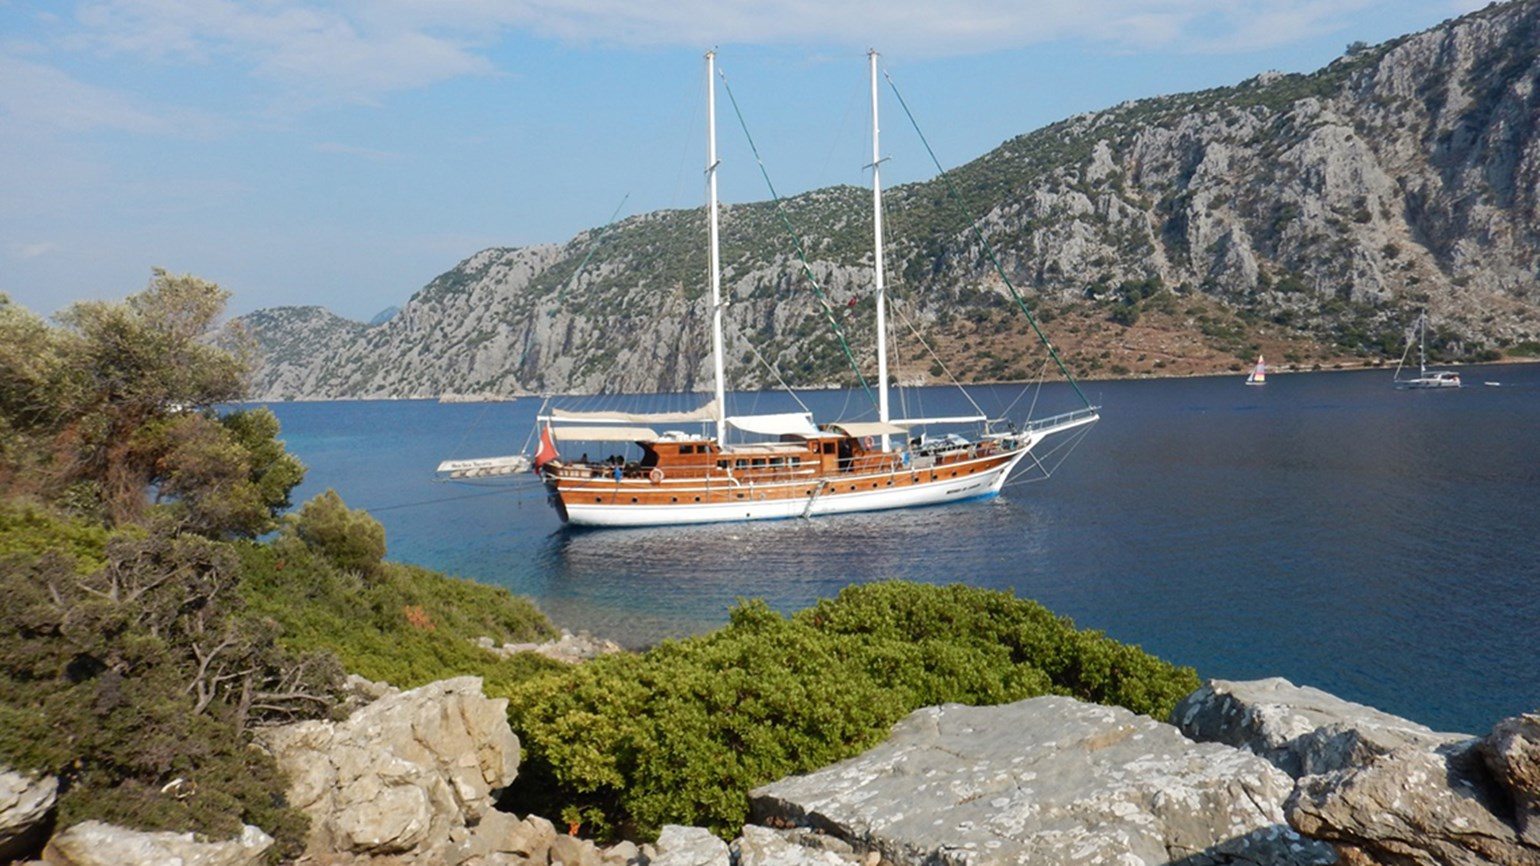 Greece/Turkey cruise, $750